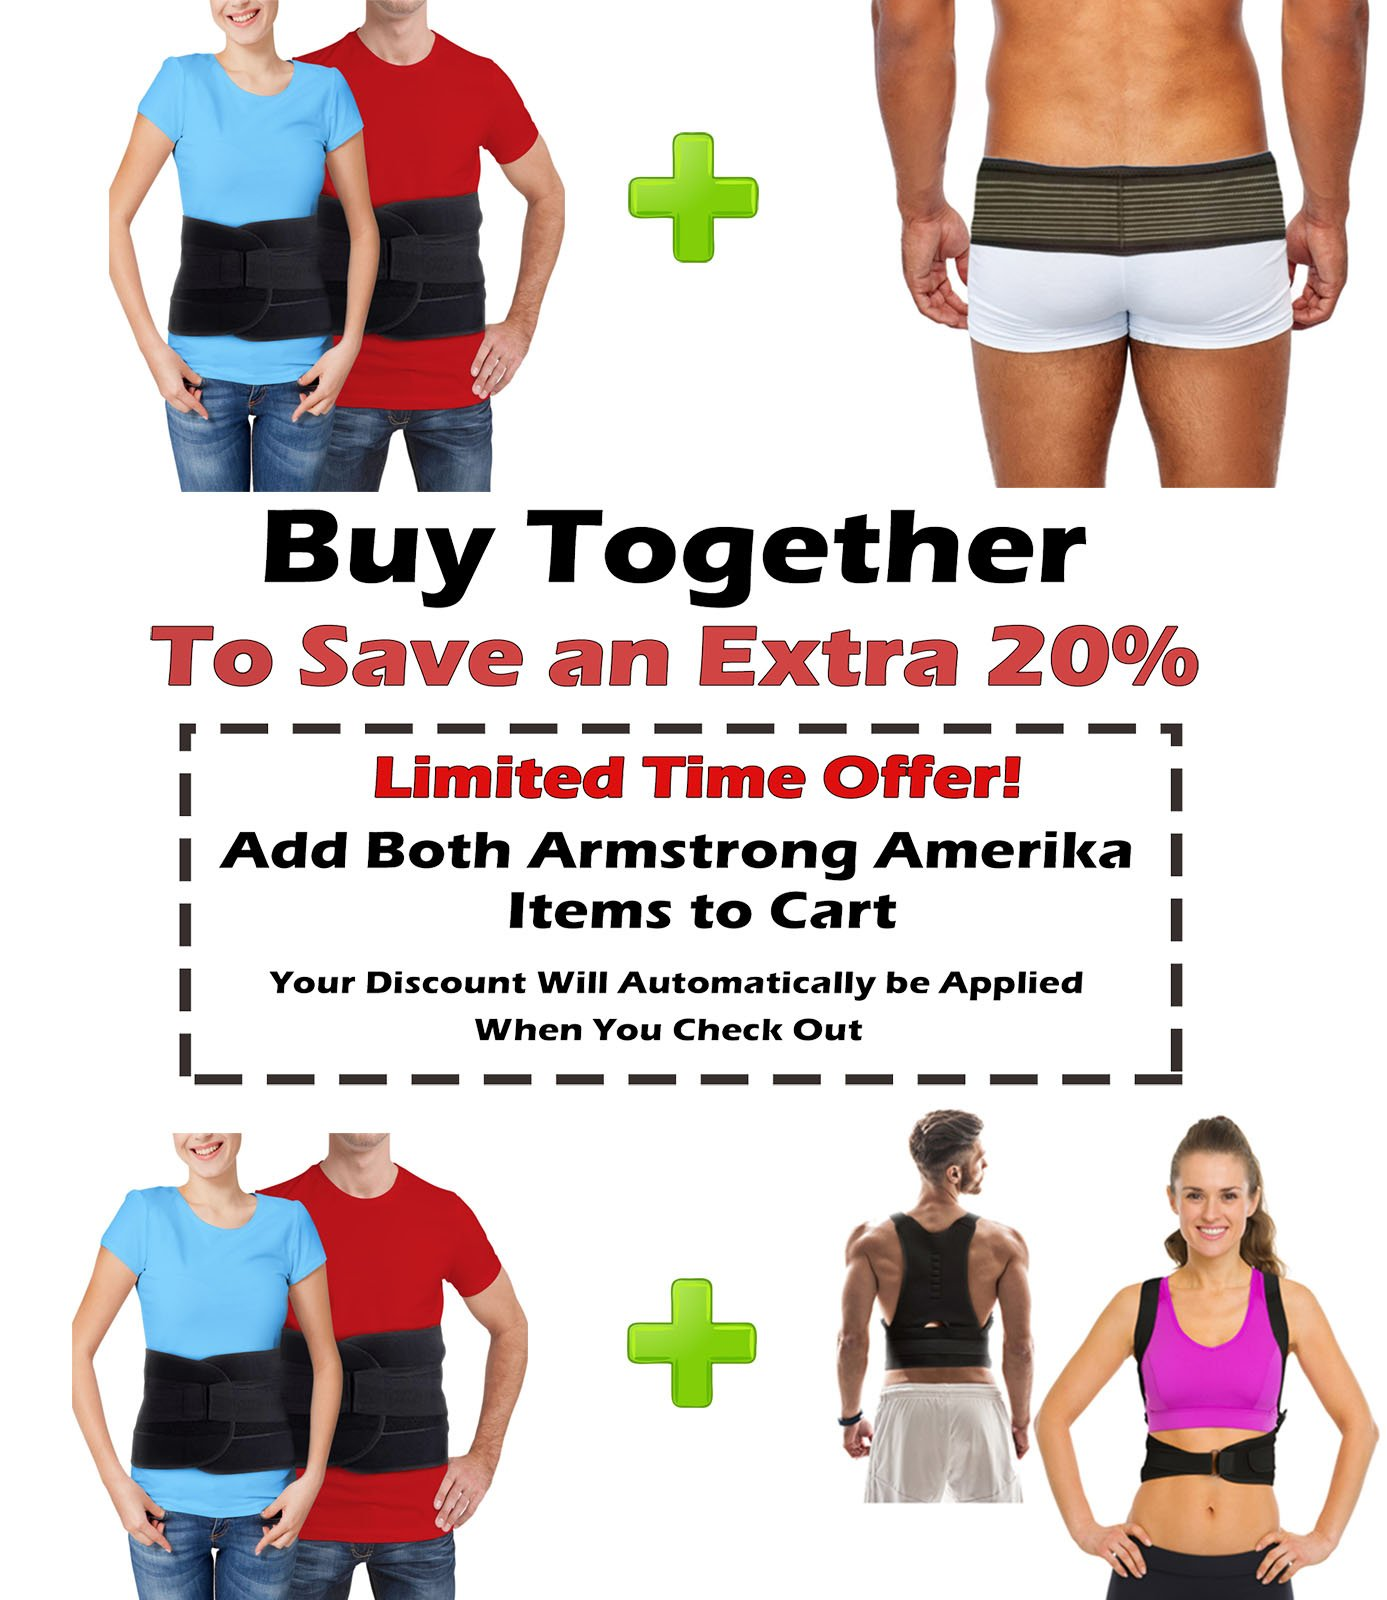 Back Brace for Lower Back Pain – Comfortable Lumbar Support Belt for Weight Lifting and Low Spine Stabilizer for Sciatica Nerve Relief or Scoliosis. Compression for Bulging Herniated Disc (Medium) by ARMSTRONG AMERIKA (Image #7)